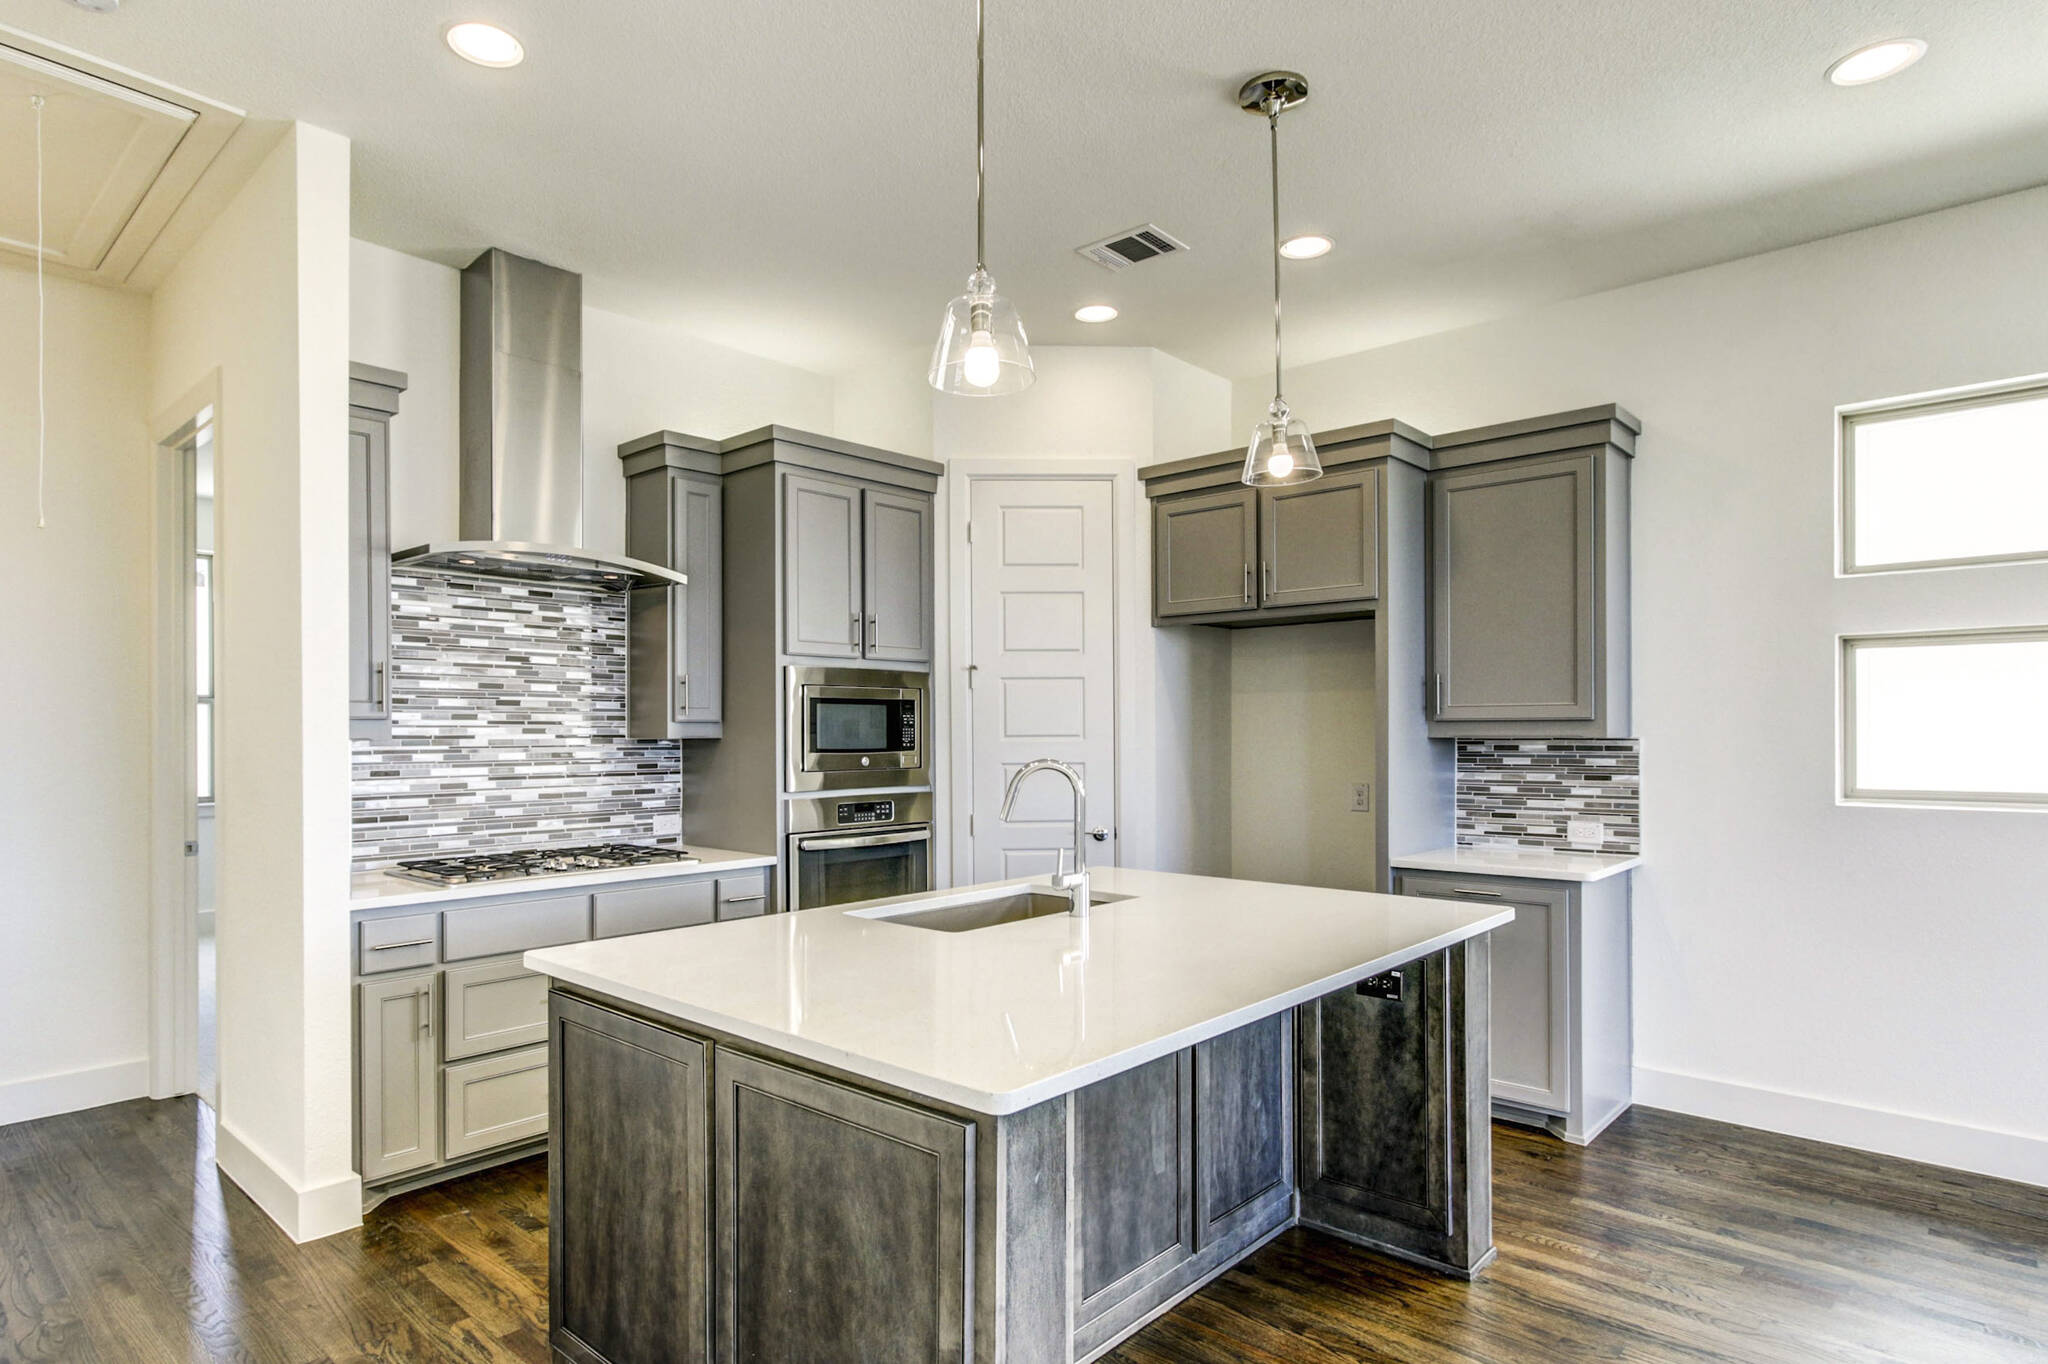 7846-verona_maybrook_merion006_gourmet-kitchen_thumb